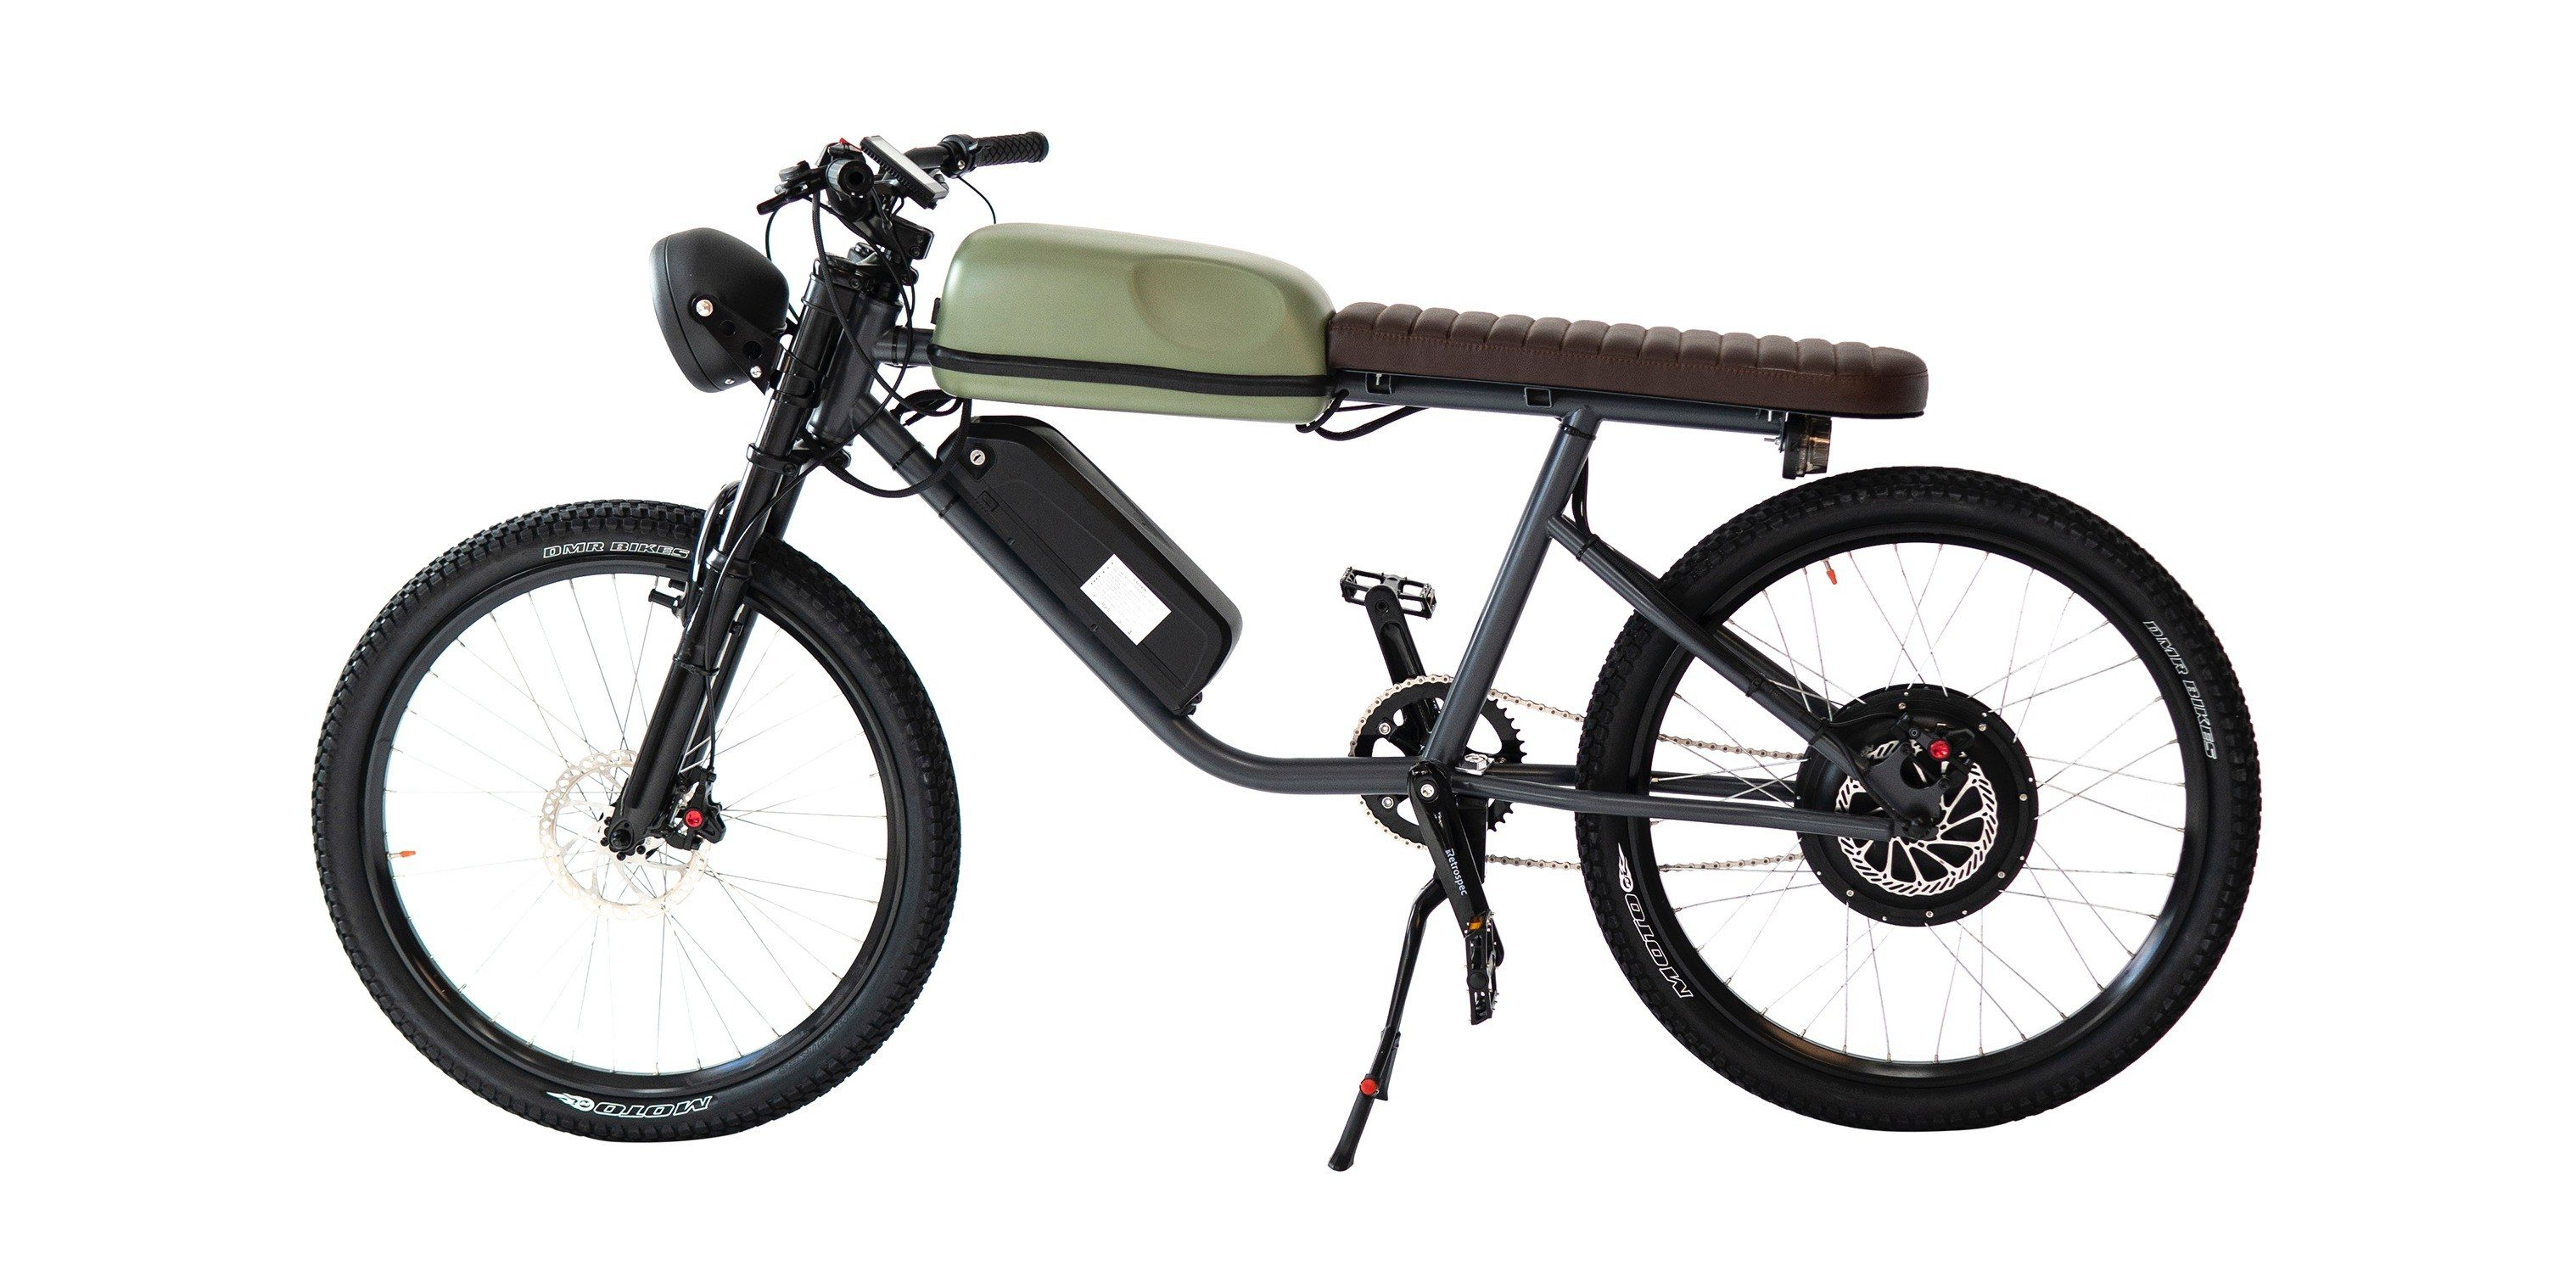 The Tempest Titan R Is a Fantastic Blend of Electric Bike